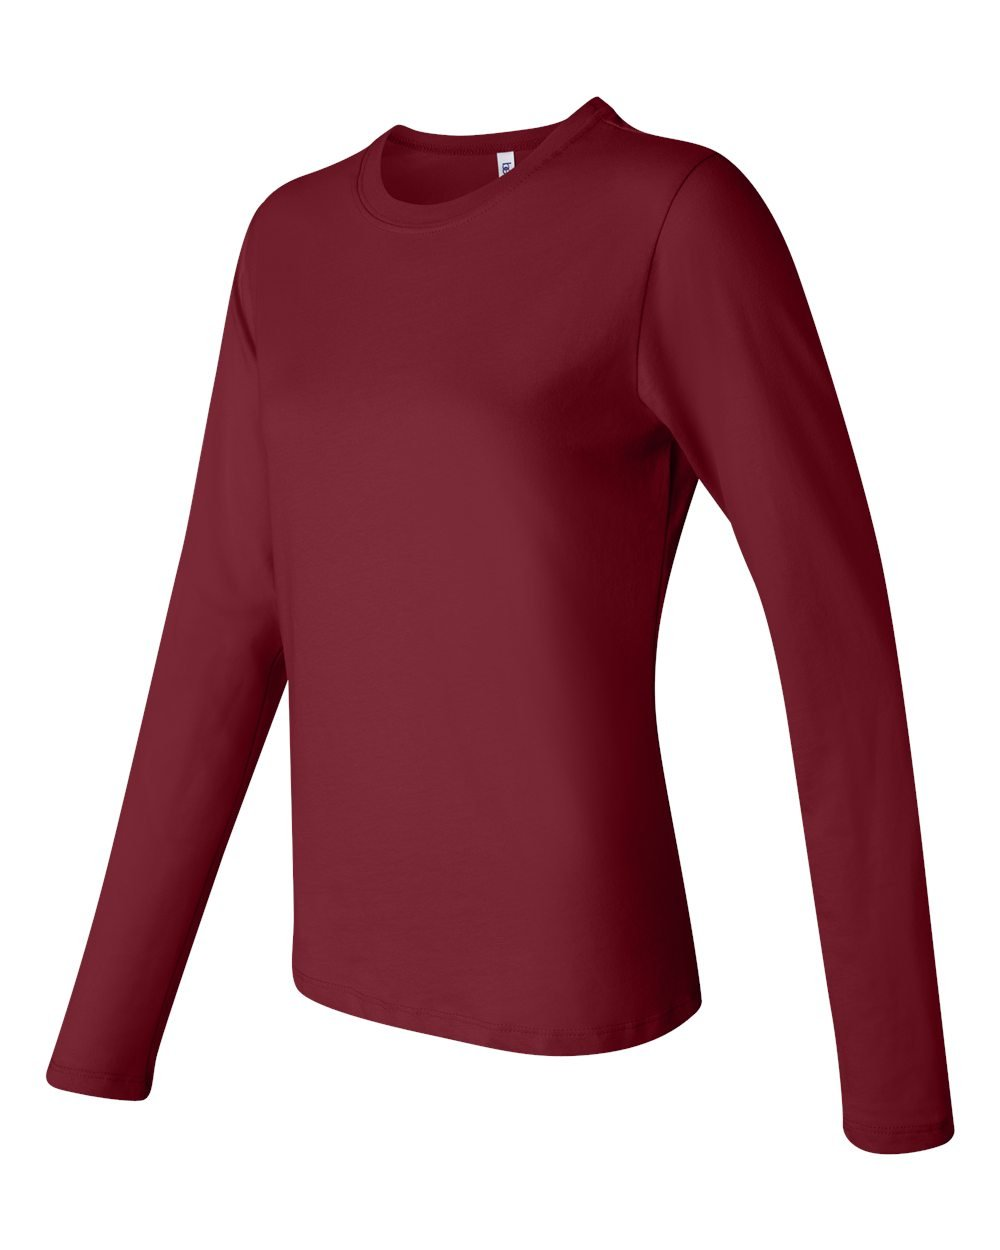 Bella and canvas ladies 39 long sleeve jersey t shirt evan for Bella shirts screen printing